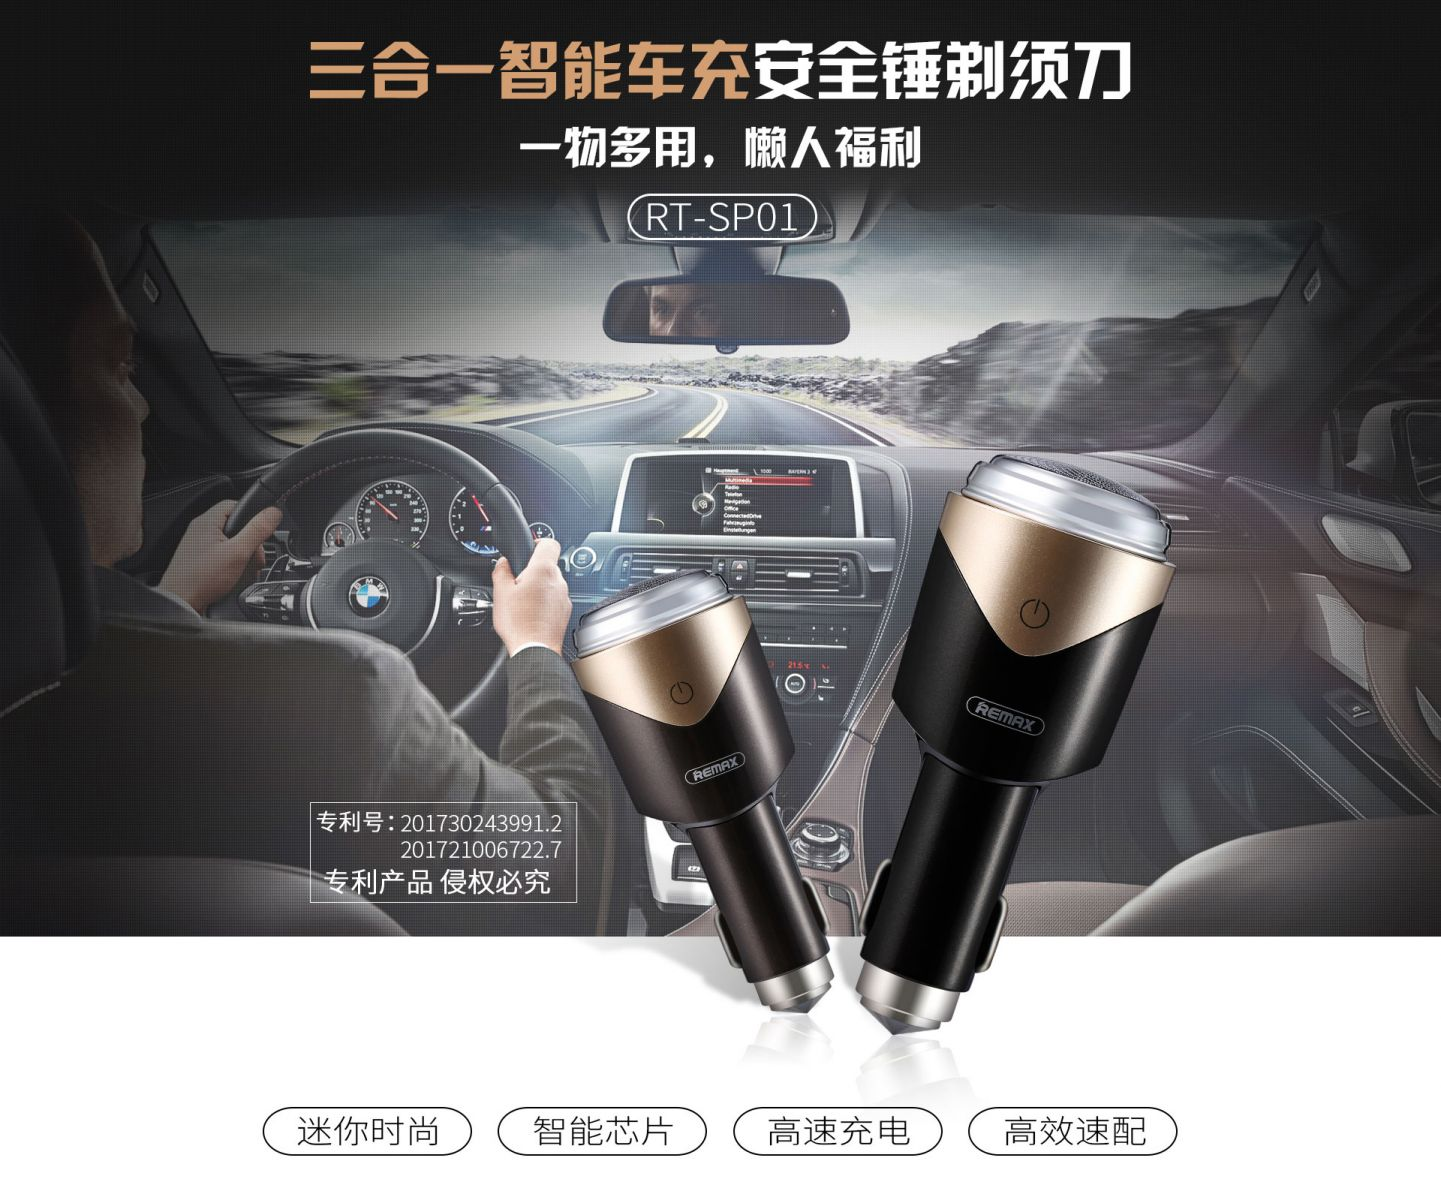 Remax 3 In 1 Car Charger Safety Hammer Shaver Rt Sp01 Black Gold Port Usb 36a In1 P01